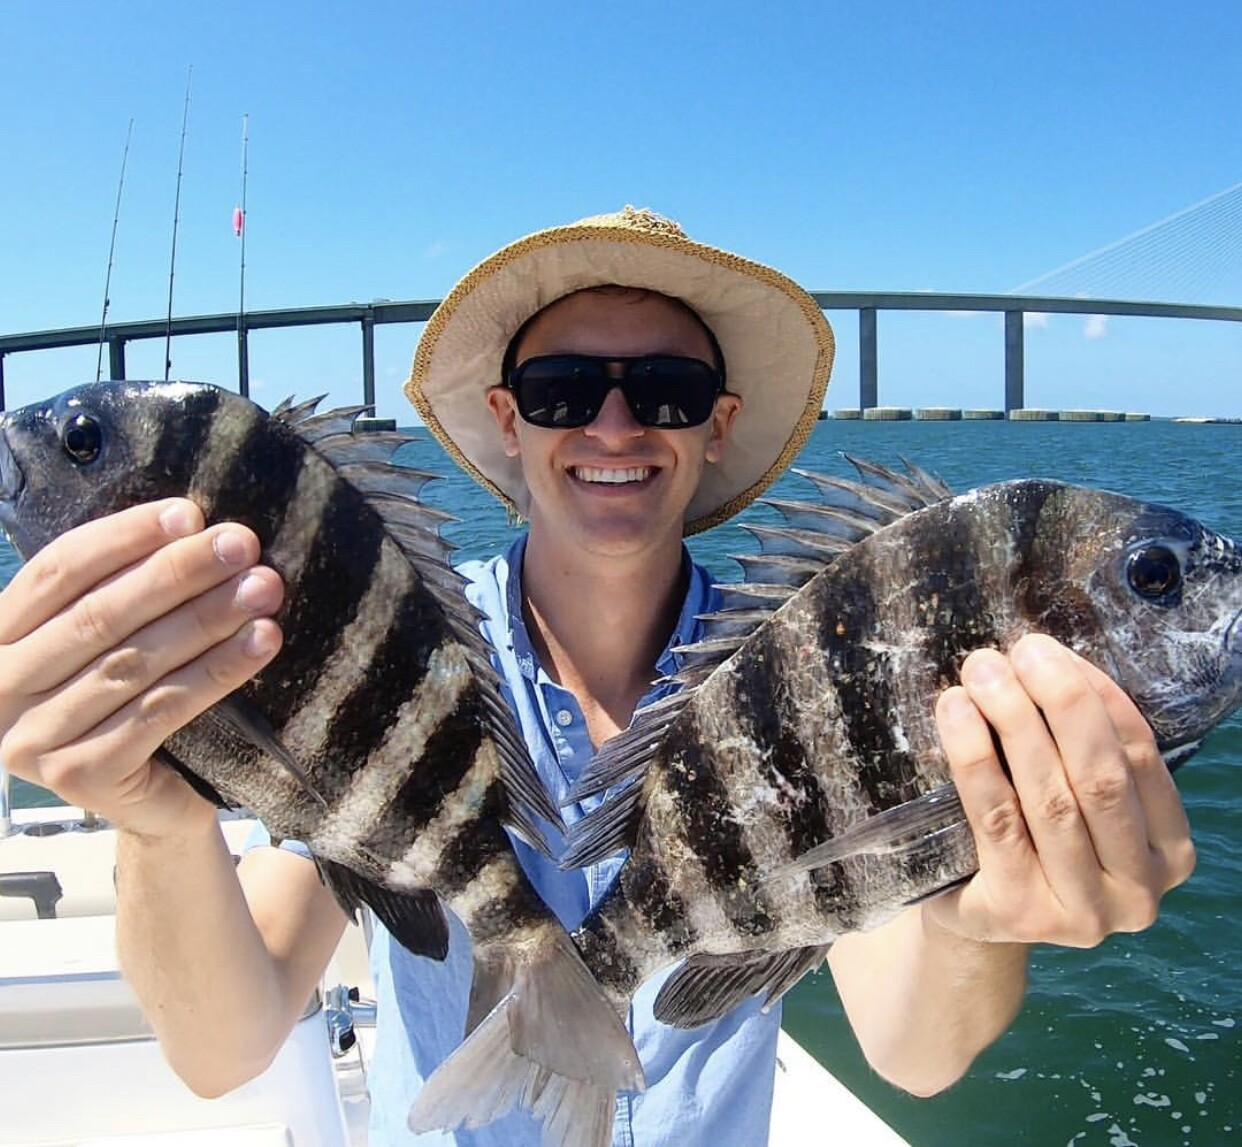 Fishing the Sunshine Skyway Bridge with Freedom Boat Club of